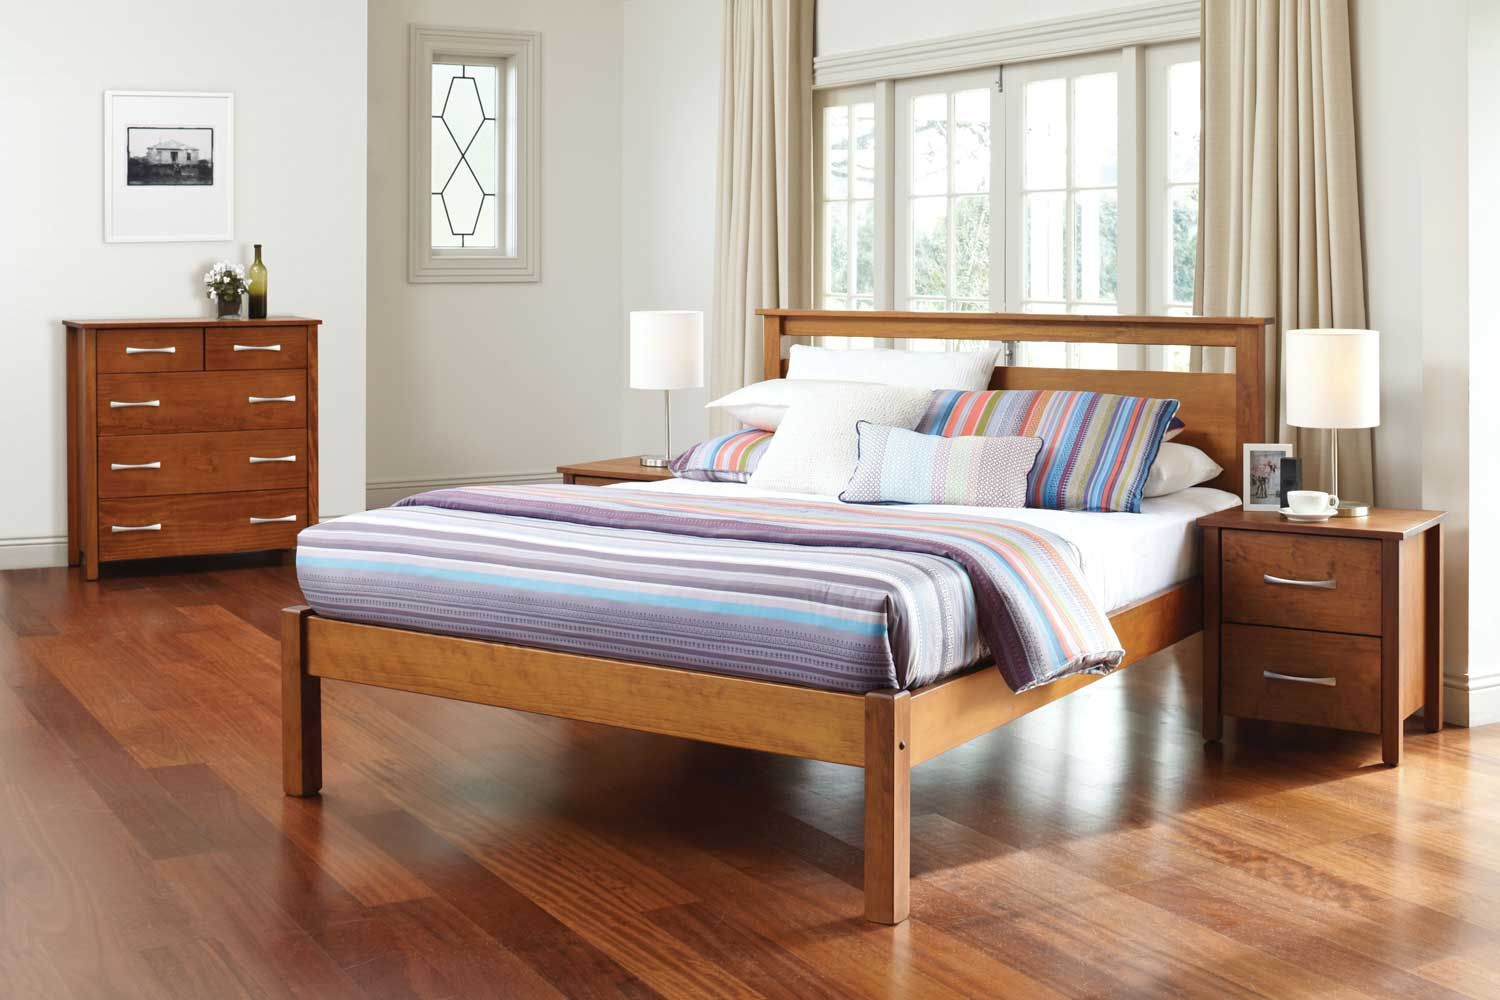 Tillsdale Bedroom Suite by Coastwood Furniture Bed frame